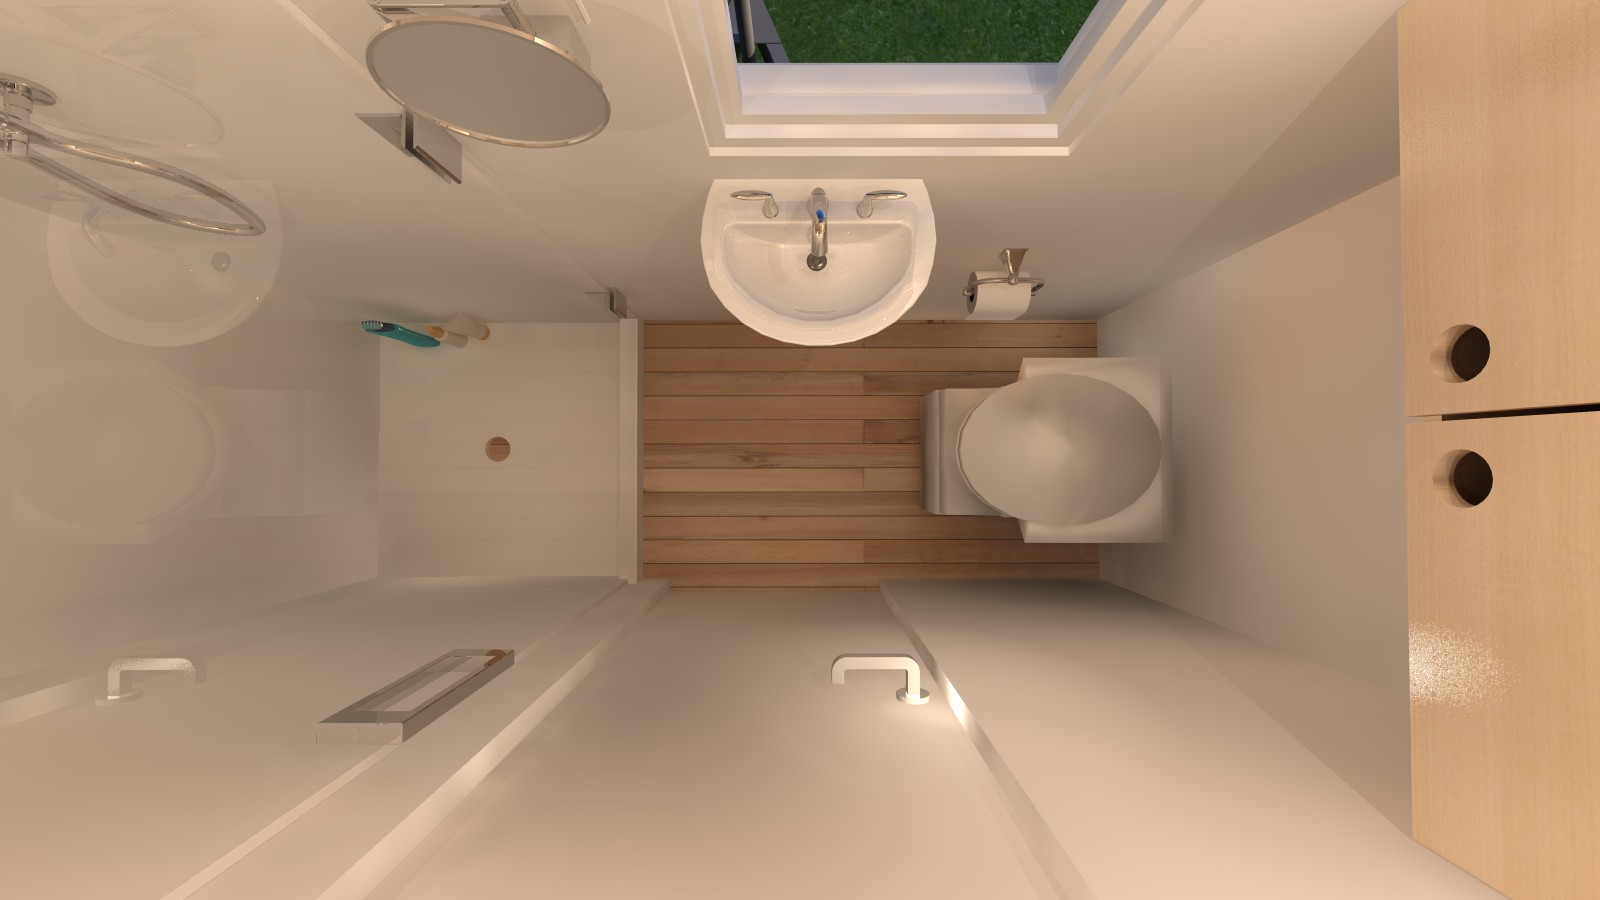 Manchester 14 tiny house plans for Tiny toilet design